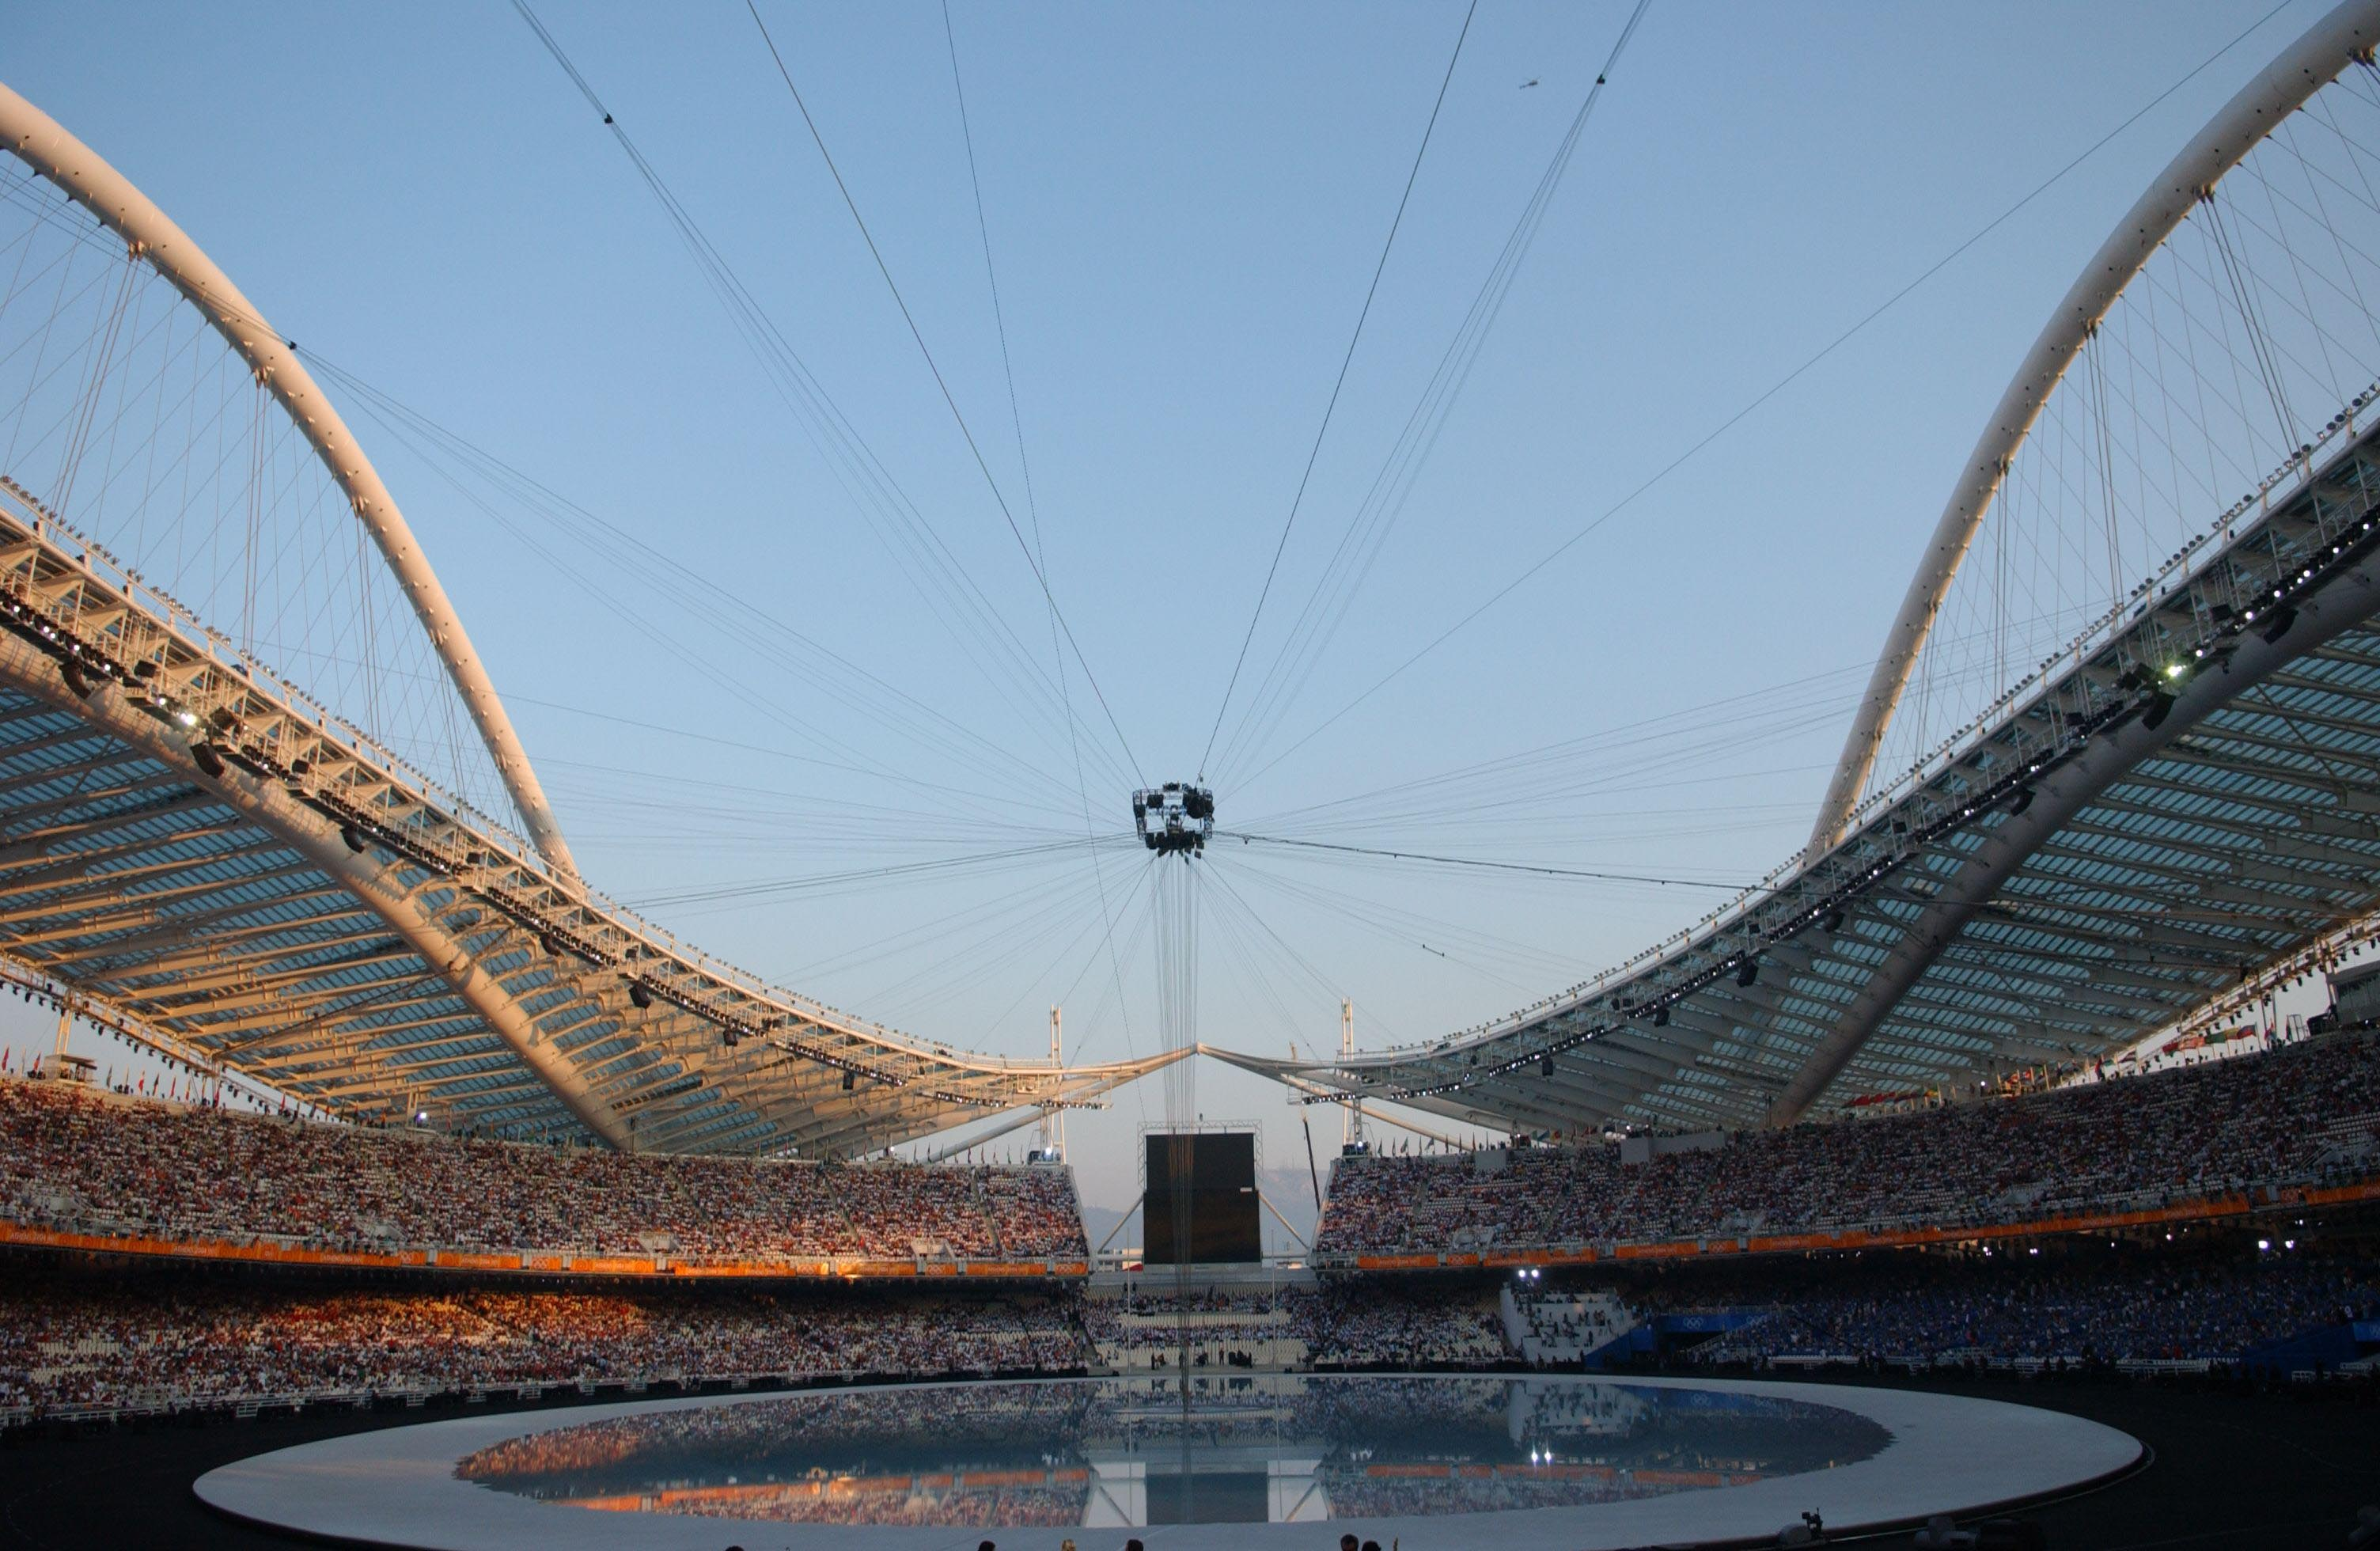 General view of the interior of the Olympic Stadium during the opening ceremony 2004 Olympic Games Opening Ceremony Athens, Greece 13/08/2004 Photo: Masakazu Watanabe © Sporting Pictures (UK) Ltd Tel: 020 7405 4500 Fax: 020 7831 7991 www.sportingpictures.com NOT FOR USE IN AUSTRALIA & JAPAN -PLEASE CONTACT US IF YOU WISH TO USE THIS IMAGE IN THESE COUNTRIES